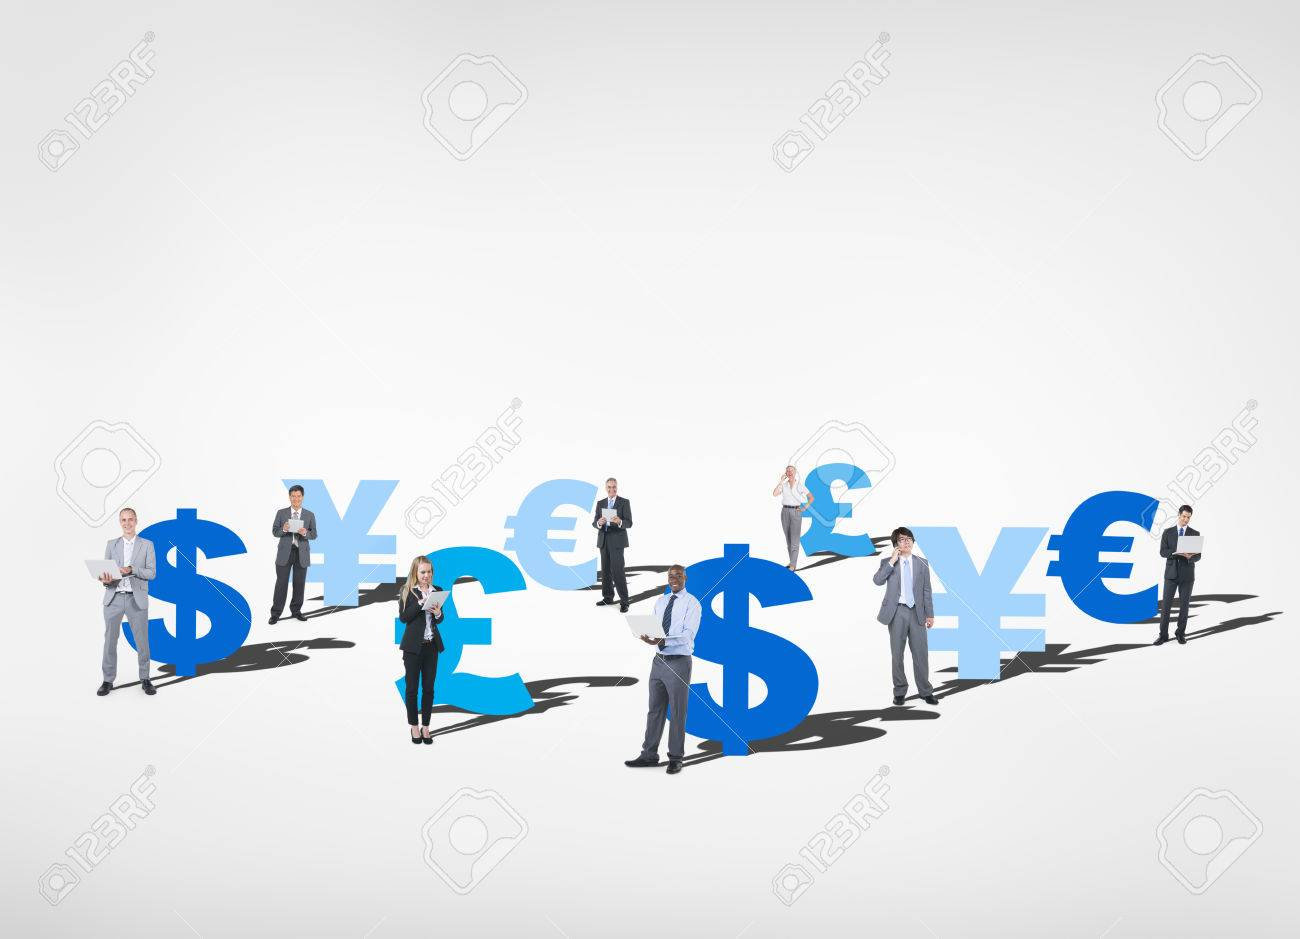 Group Of Business People Posing With Different Currency Symbols